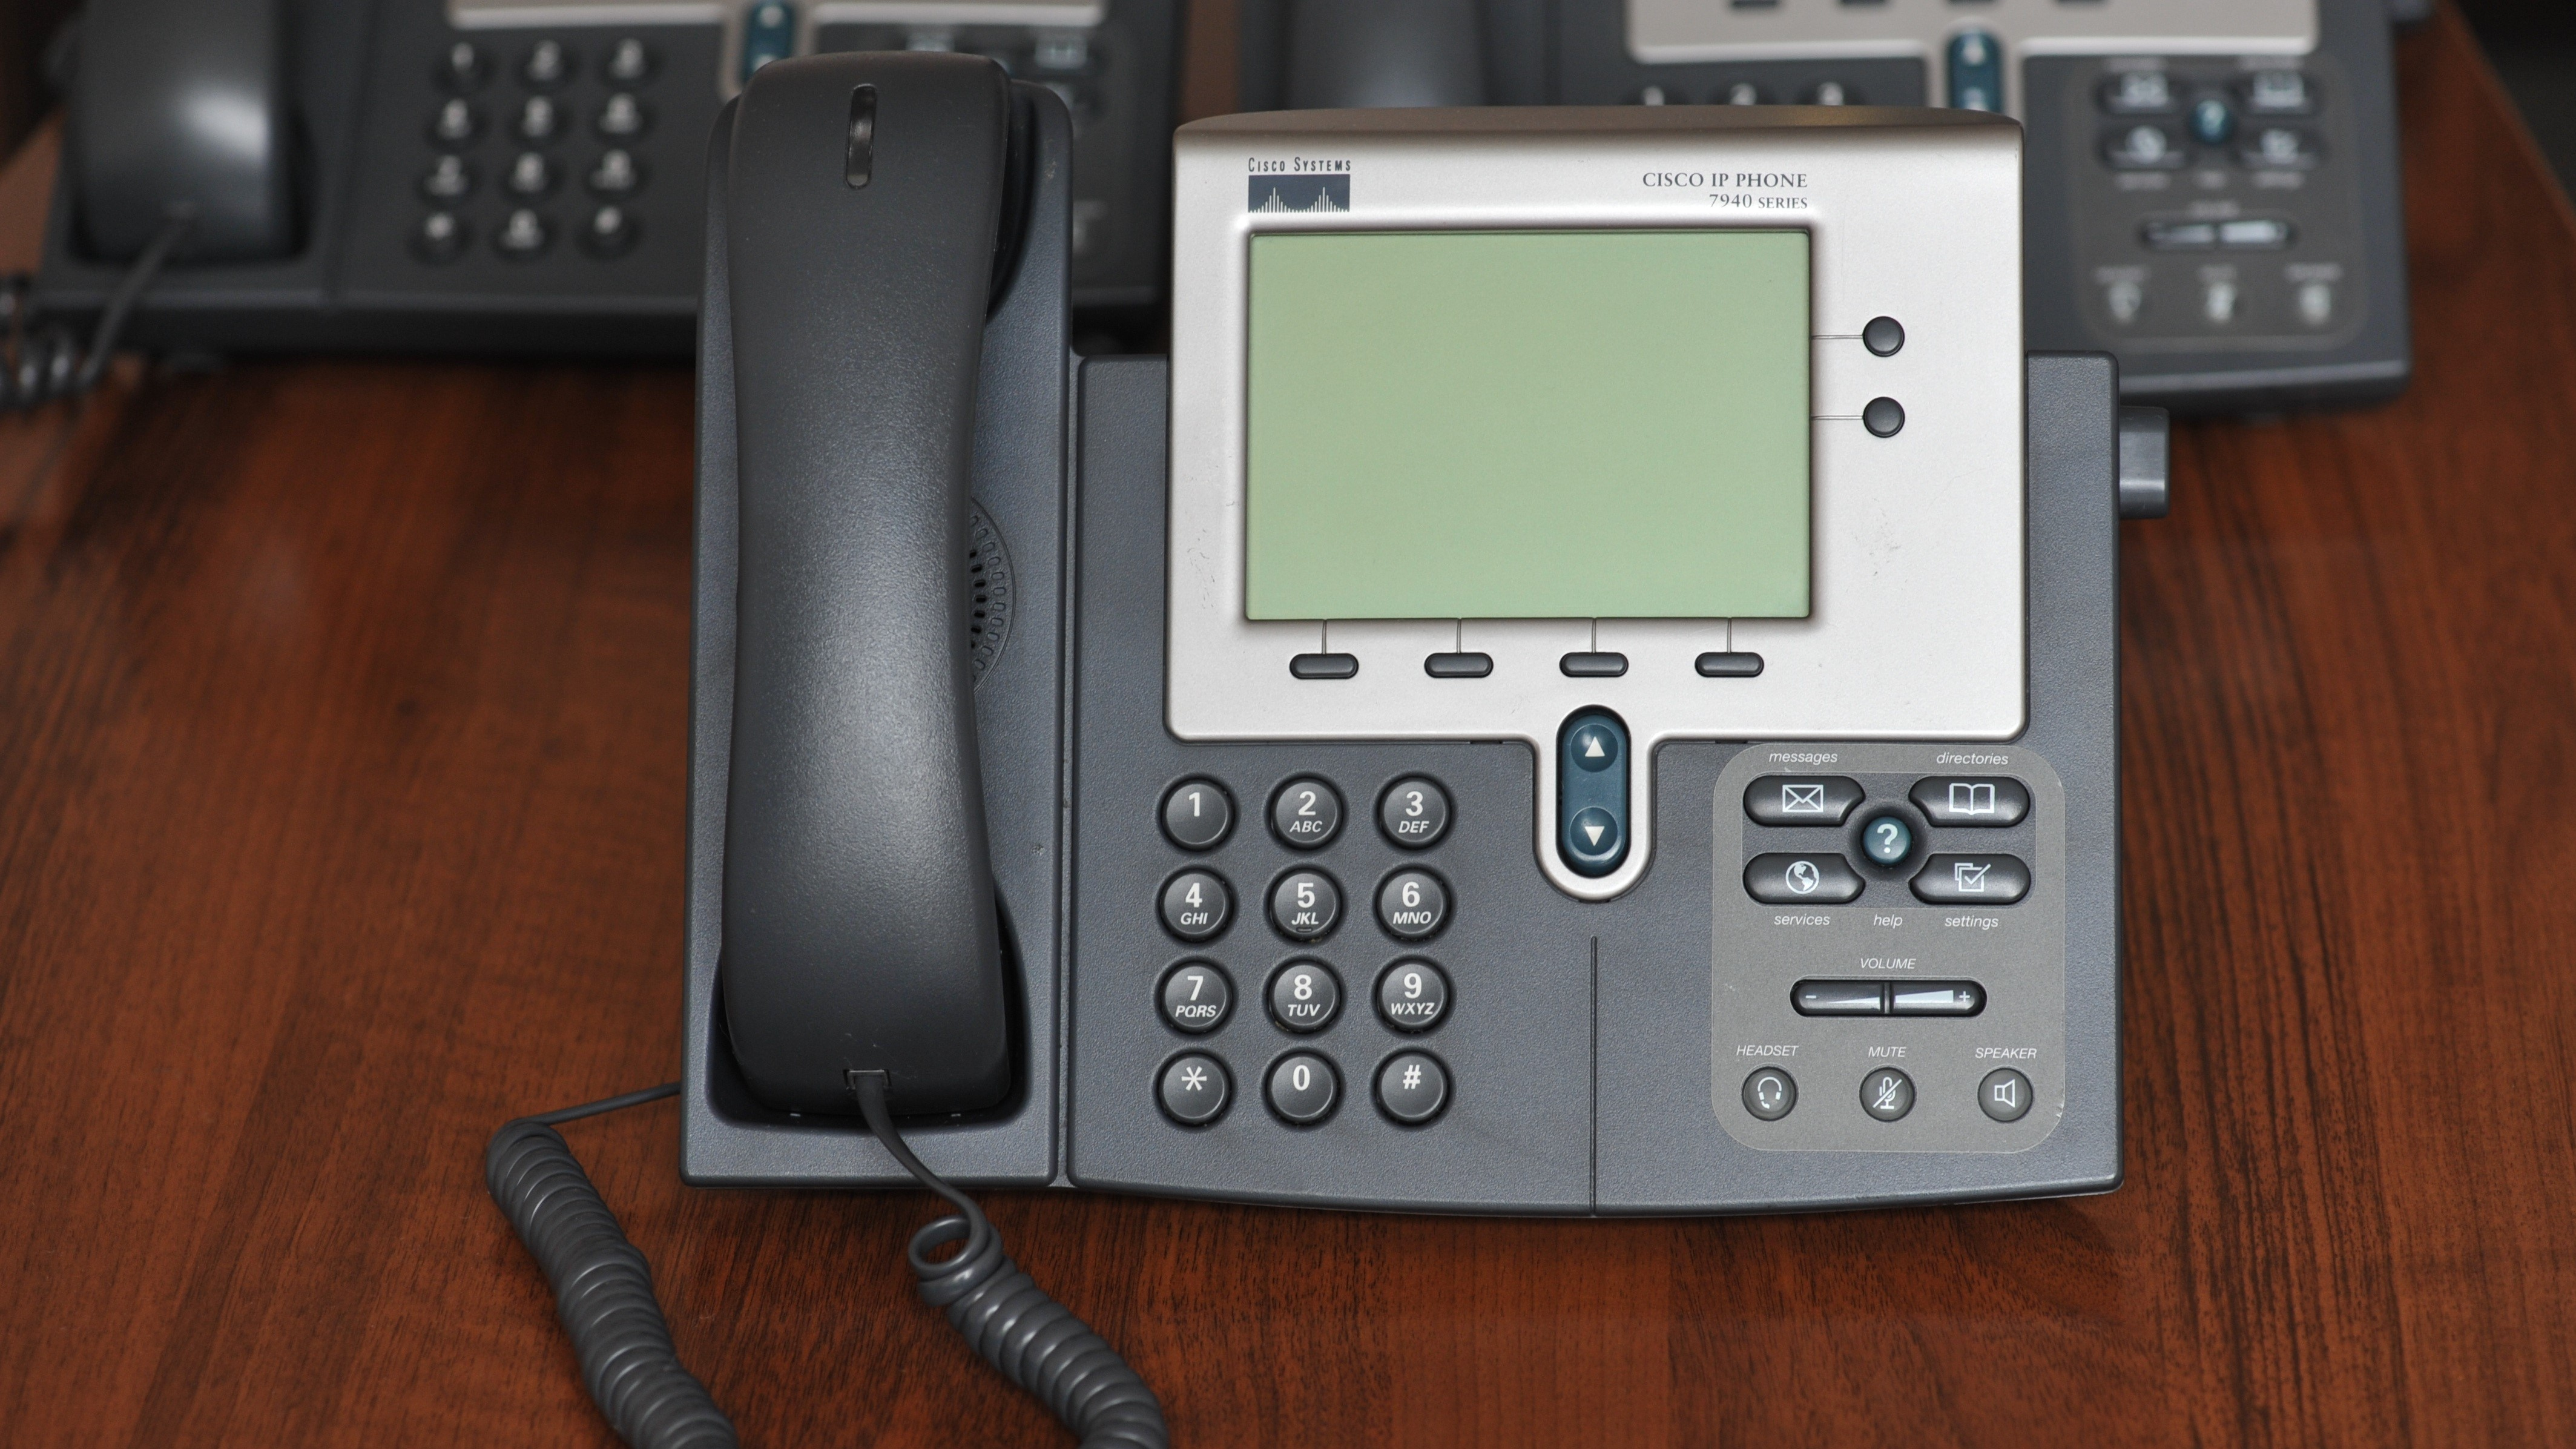 Best Ip Phones Of 2020 Voip Phones For The Small Business And Home Office Techradar